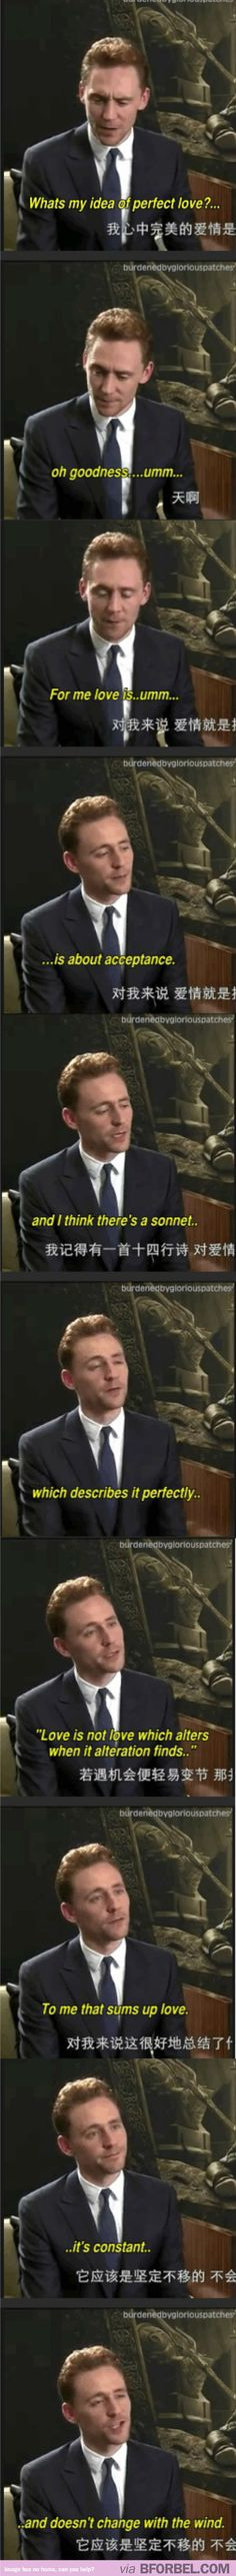 Tom Hiddleston. Le gars qui s'exprime en sonnets. I'm just gonna go sit in a corner and cry now...